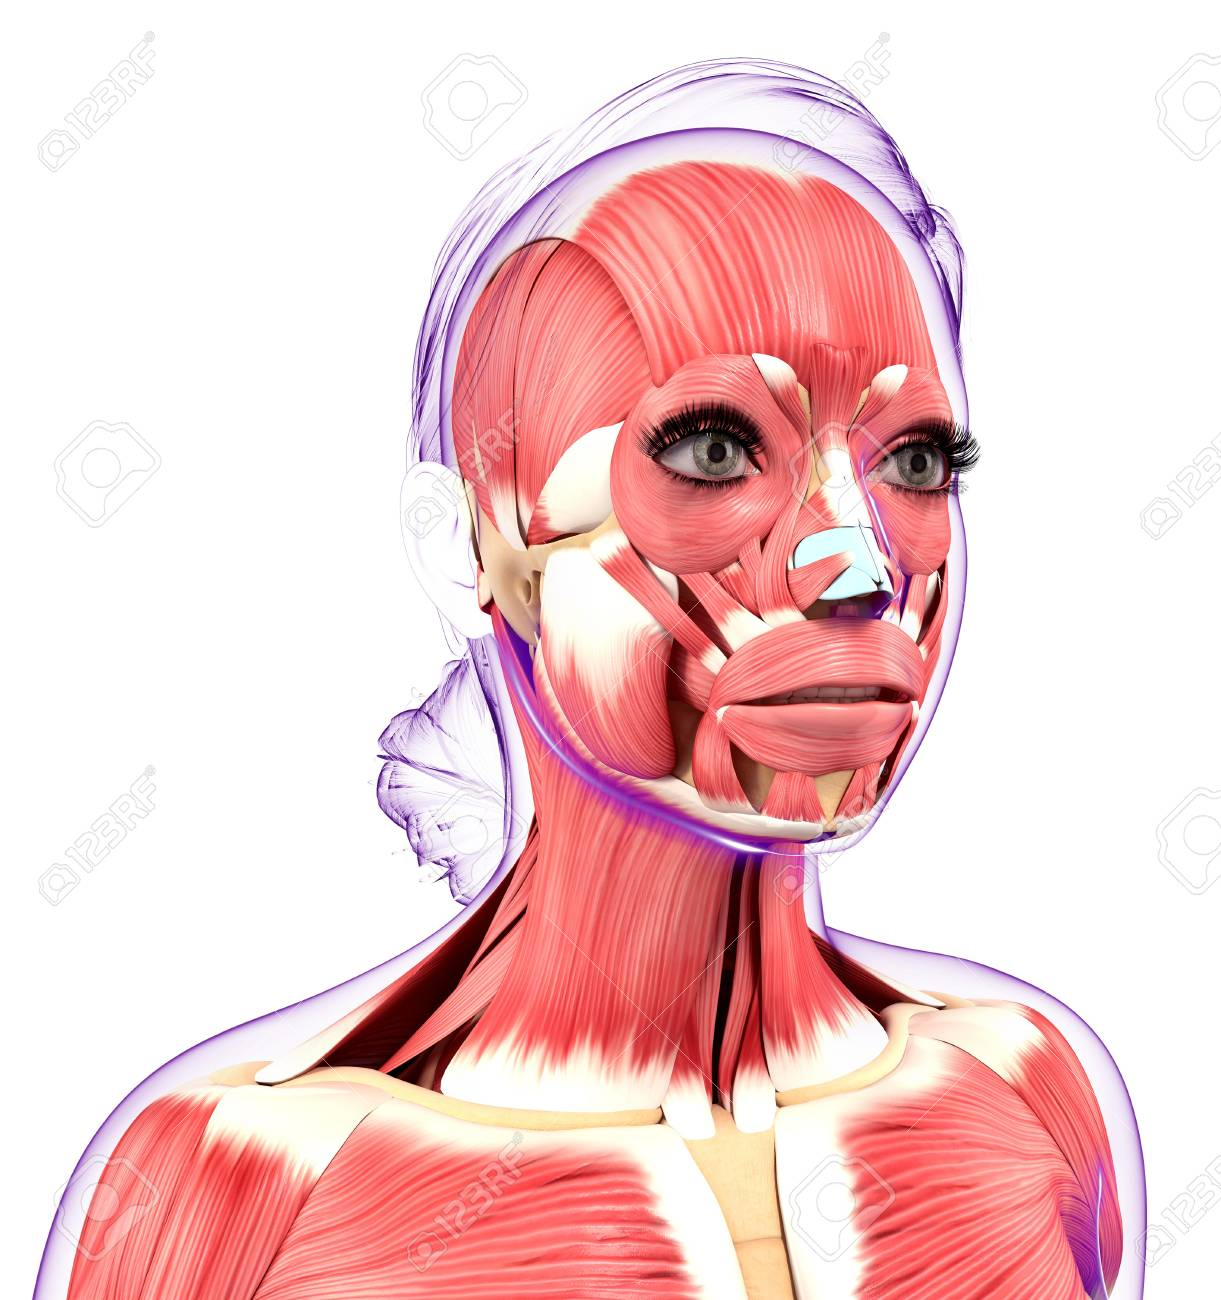 Human Muscular System, Computer Artwork Stock Photo, Picture And ...